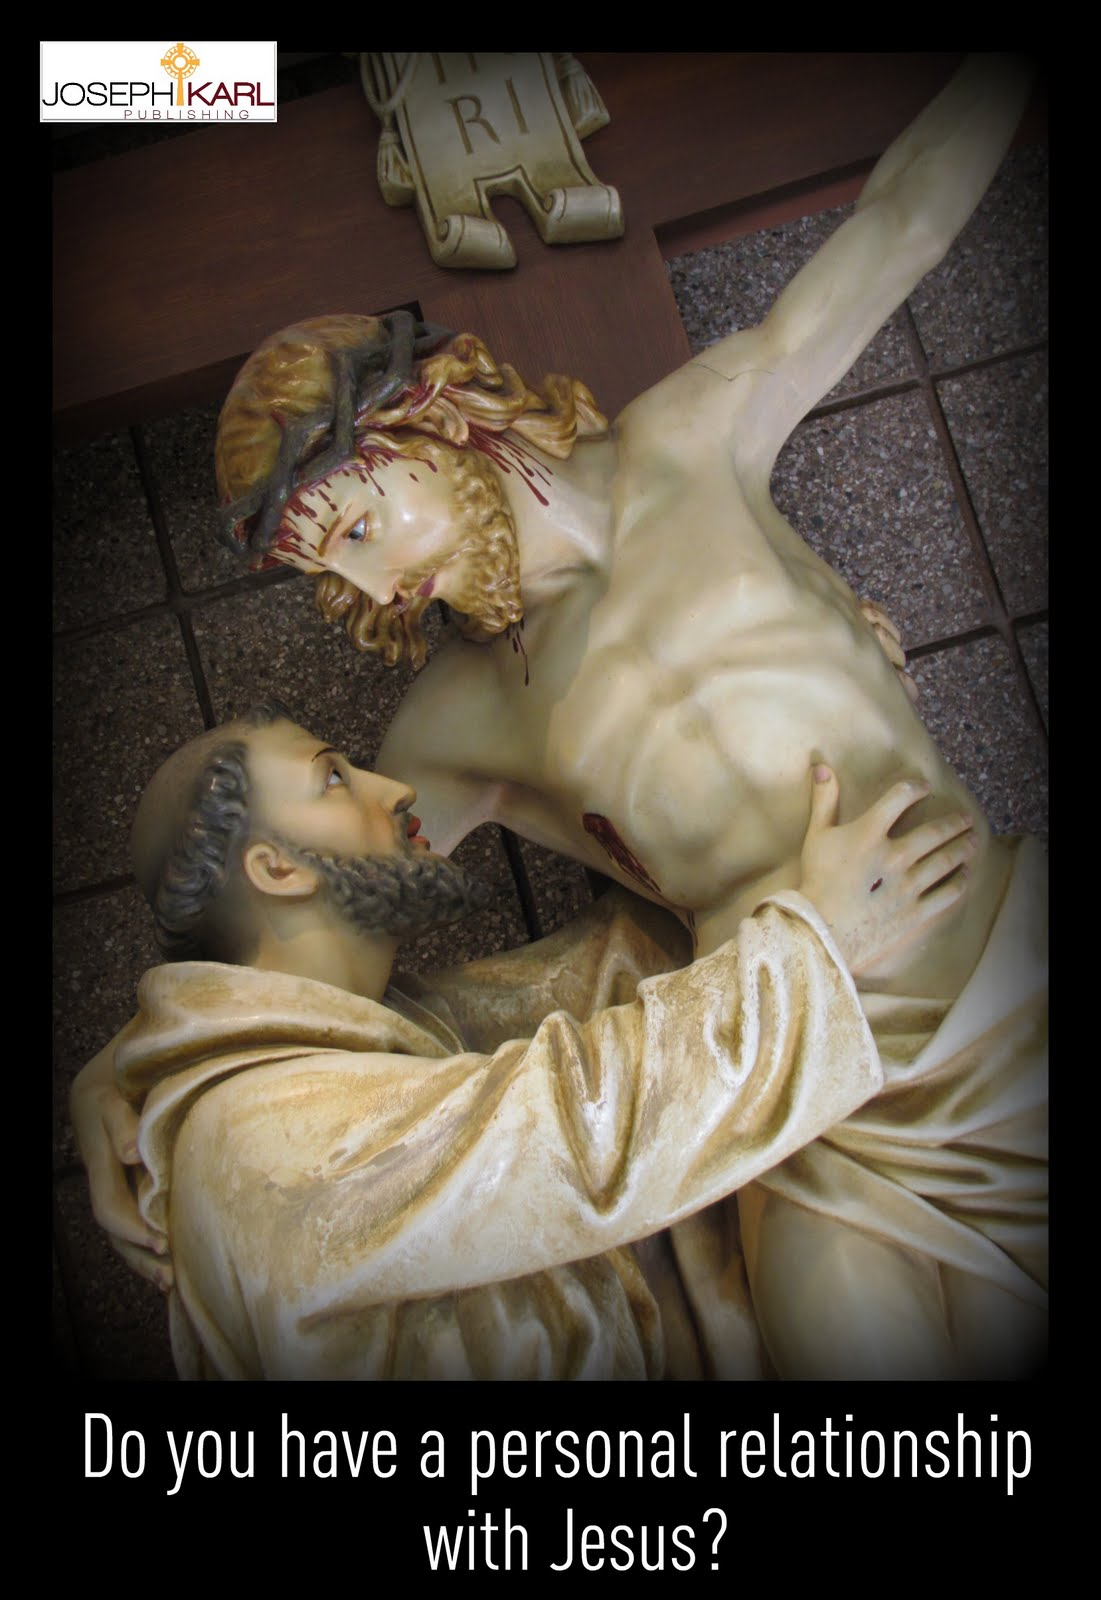 an intimate relationship with jesus